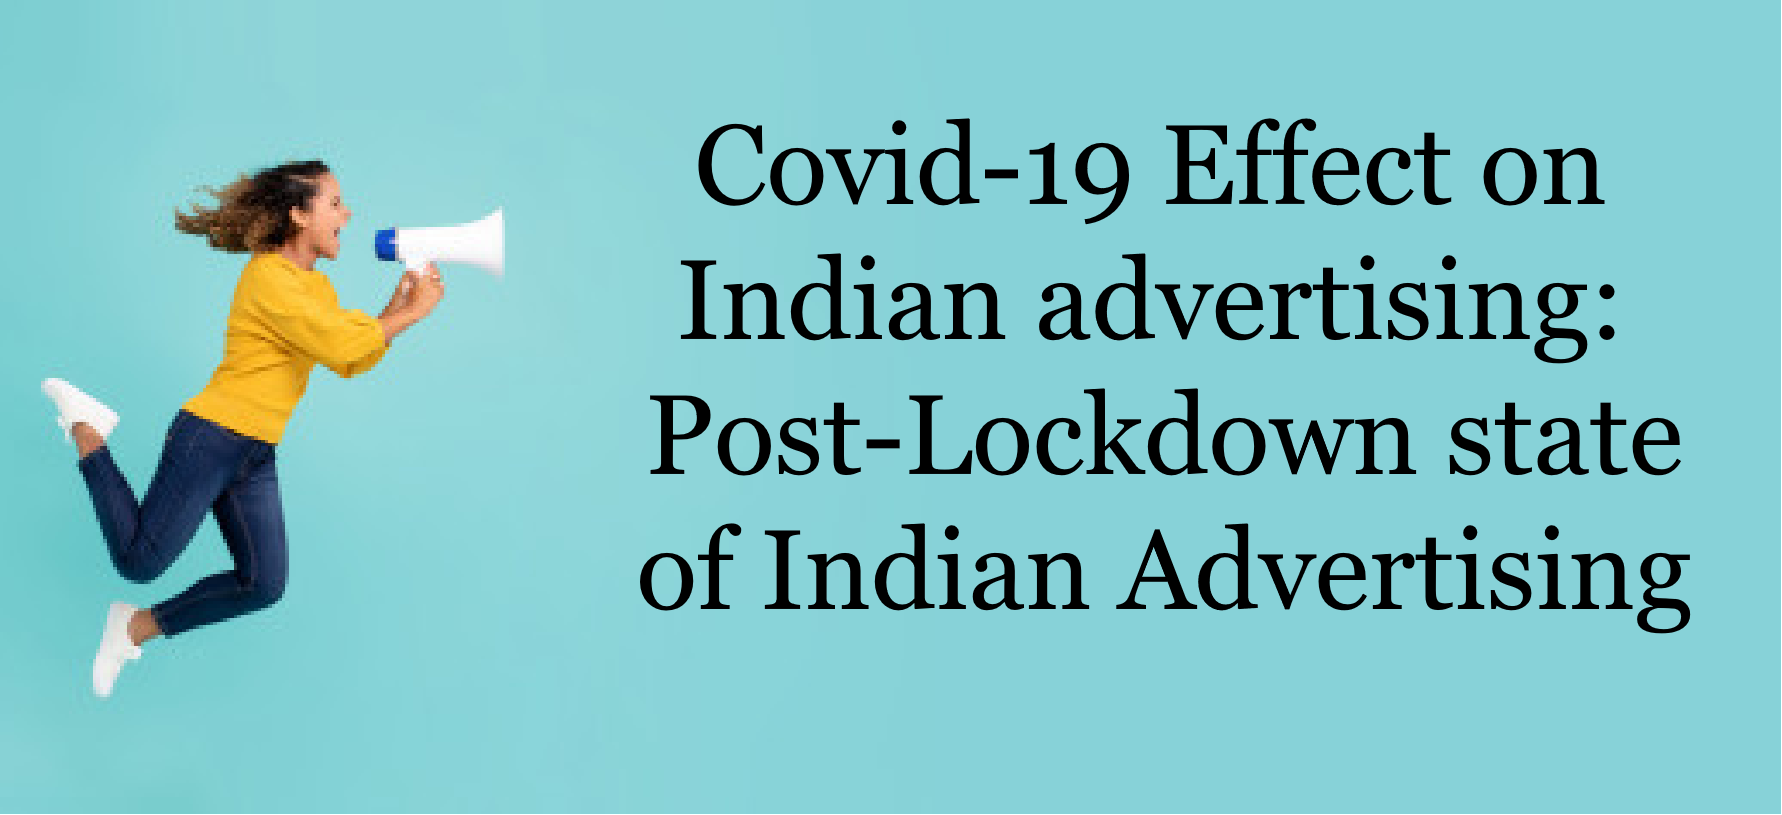 Covid-19 Effect on Indian advertising: Post-Lockdown state of Indian Advertising